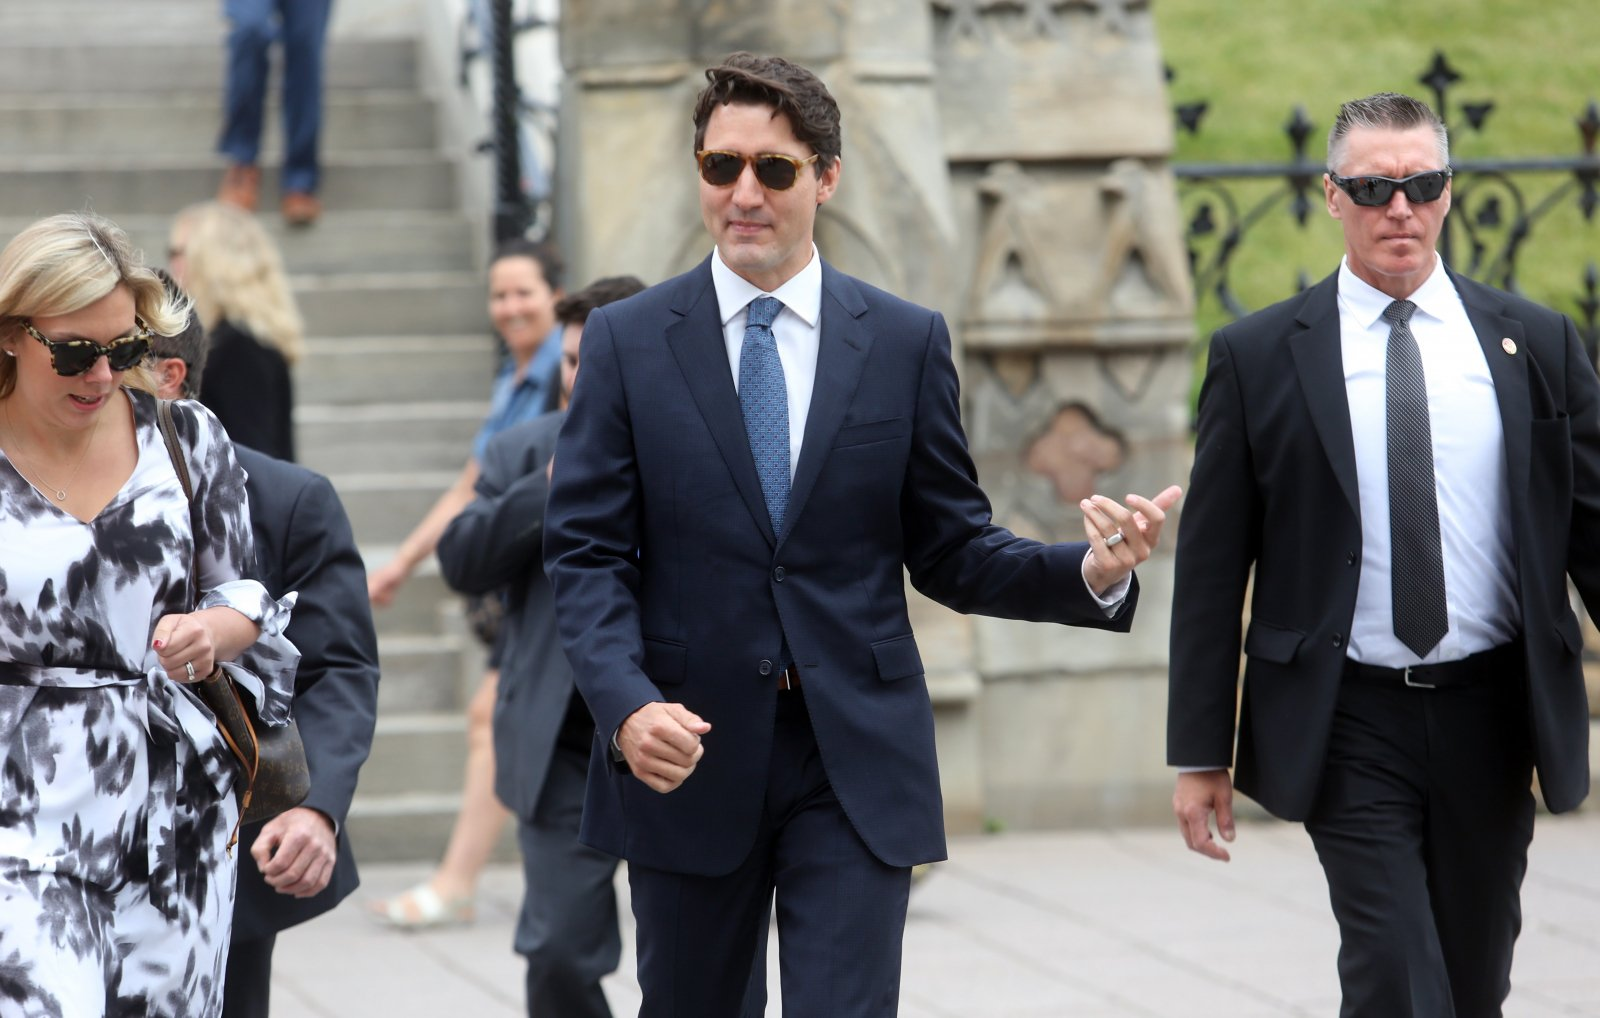 Watchdog: Justin Trudeau Is Under Scrutiny Over Alleged Ethics Violations